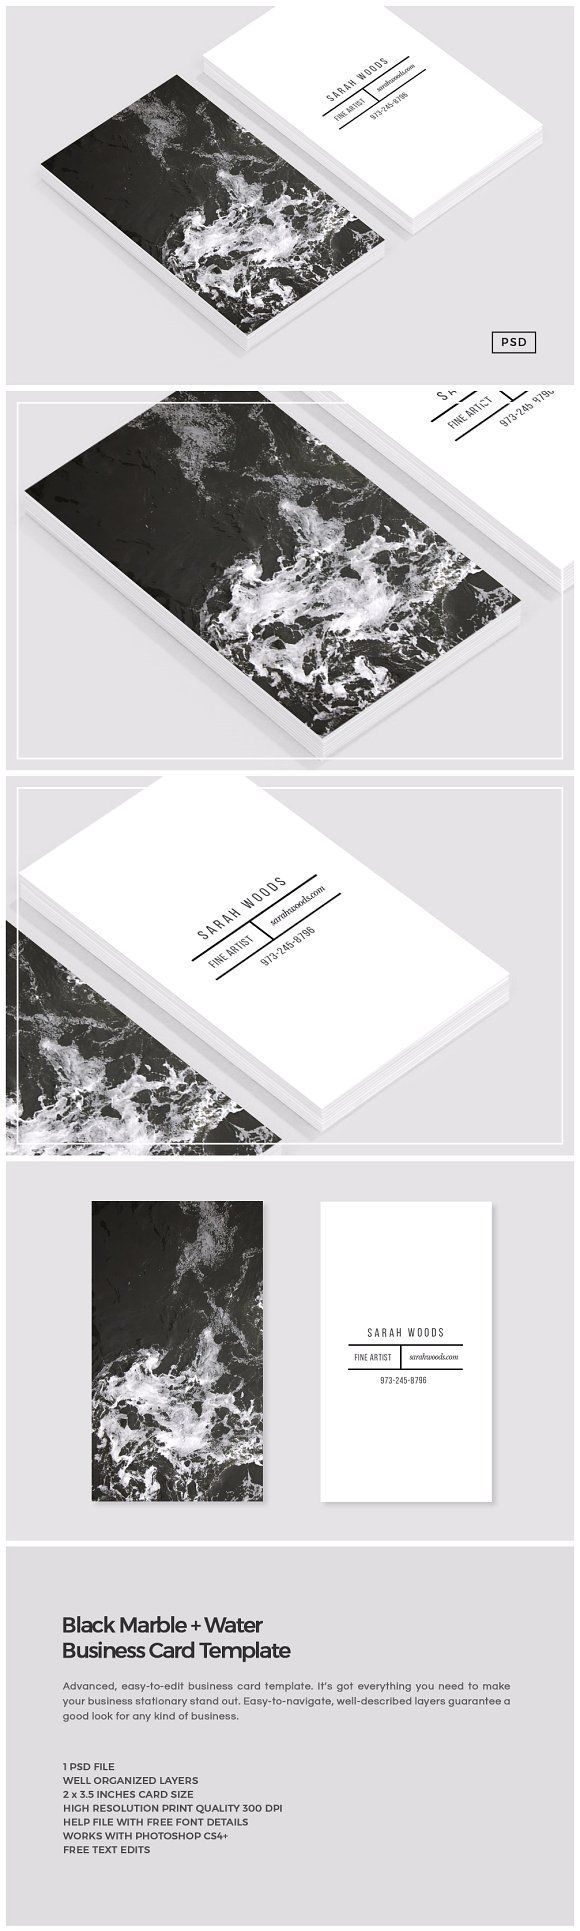 Formal Business Card Template  Card Templates Business Cards And